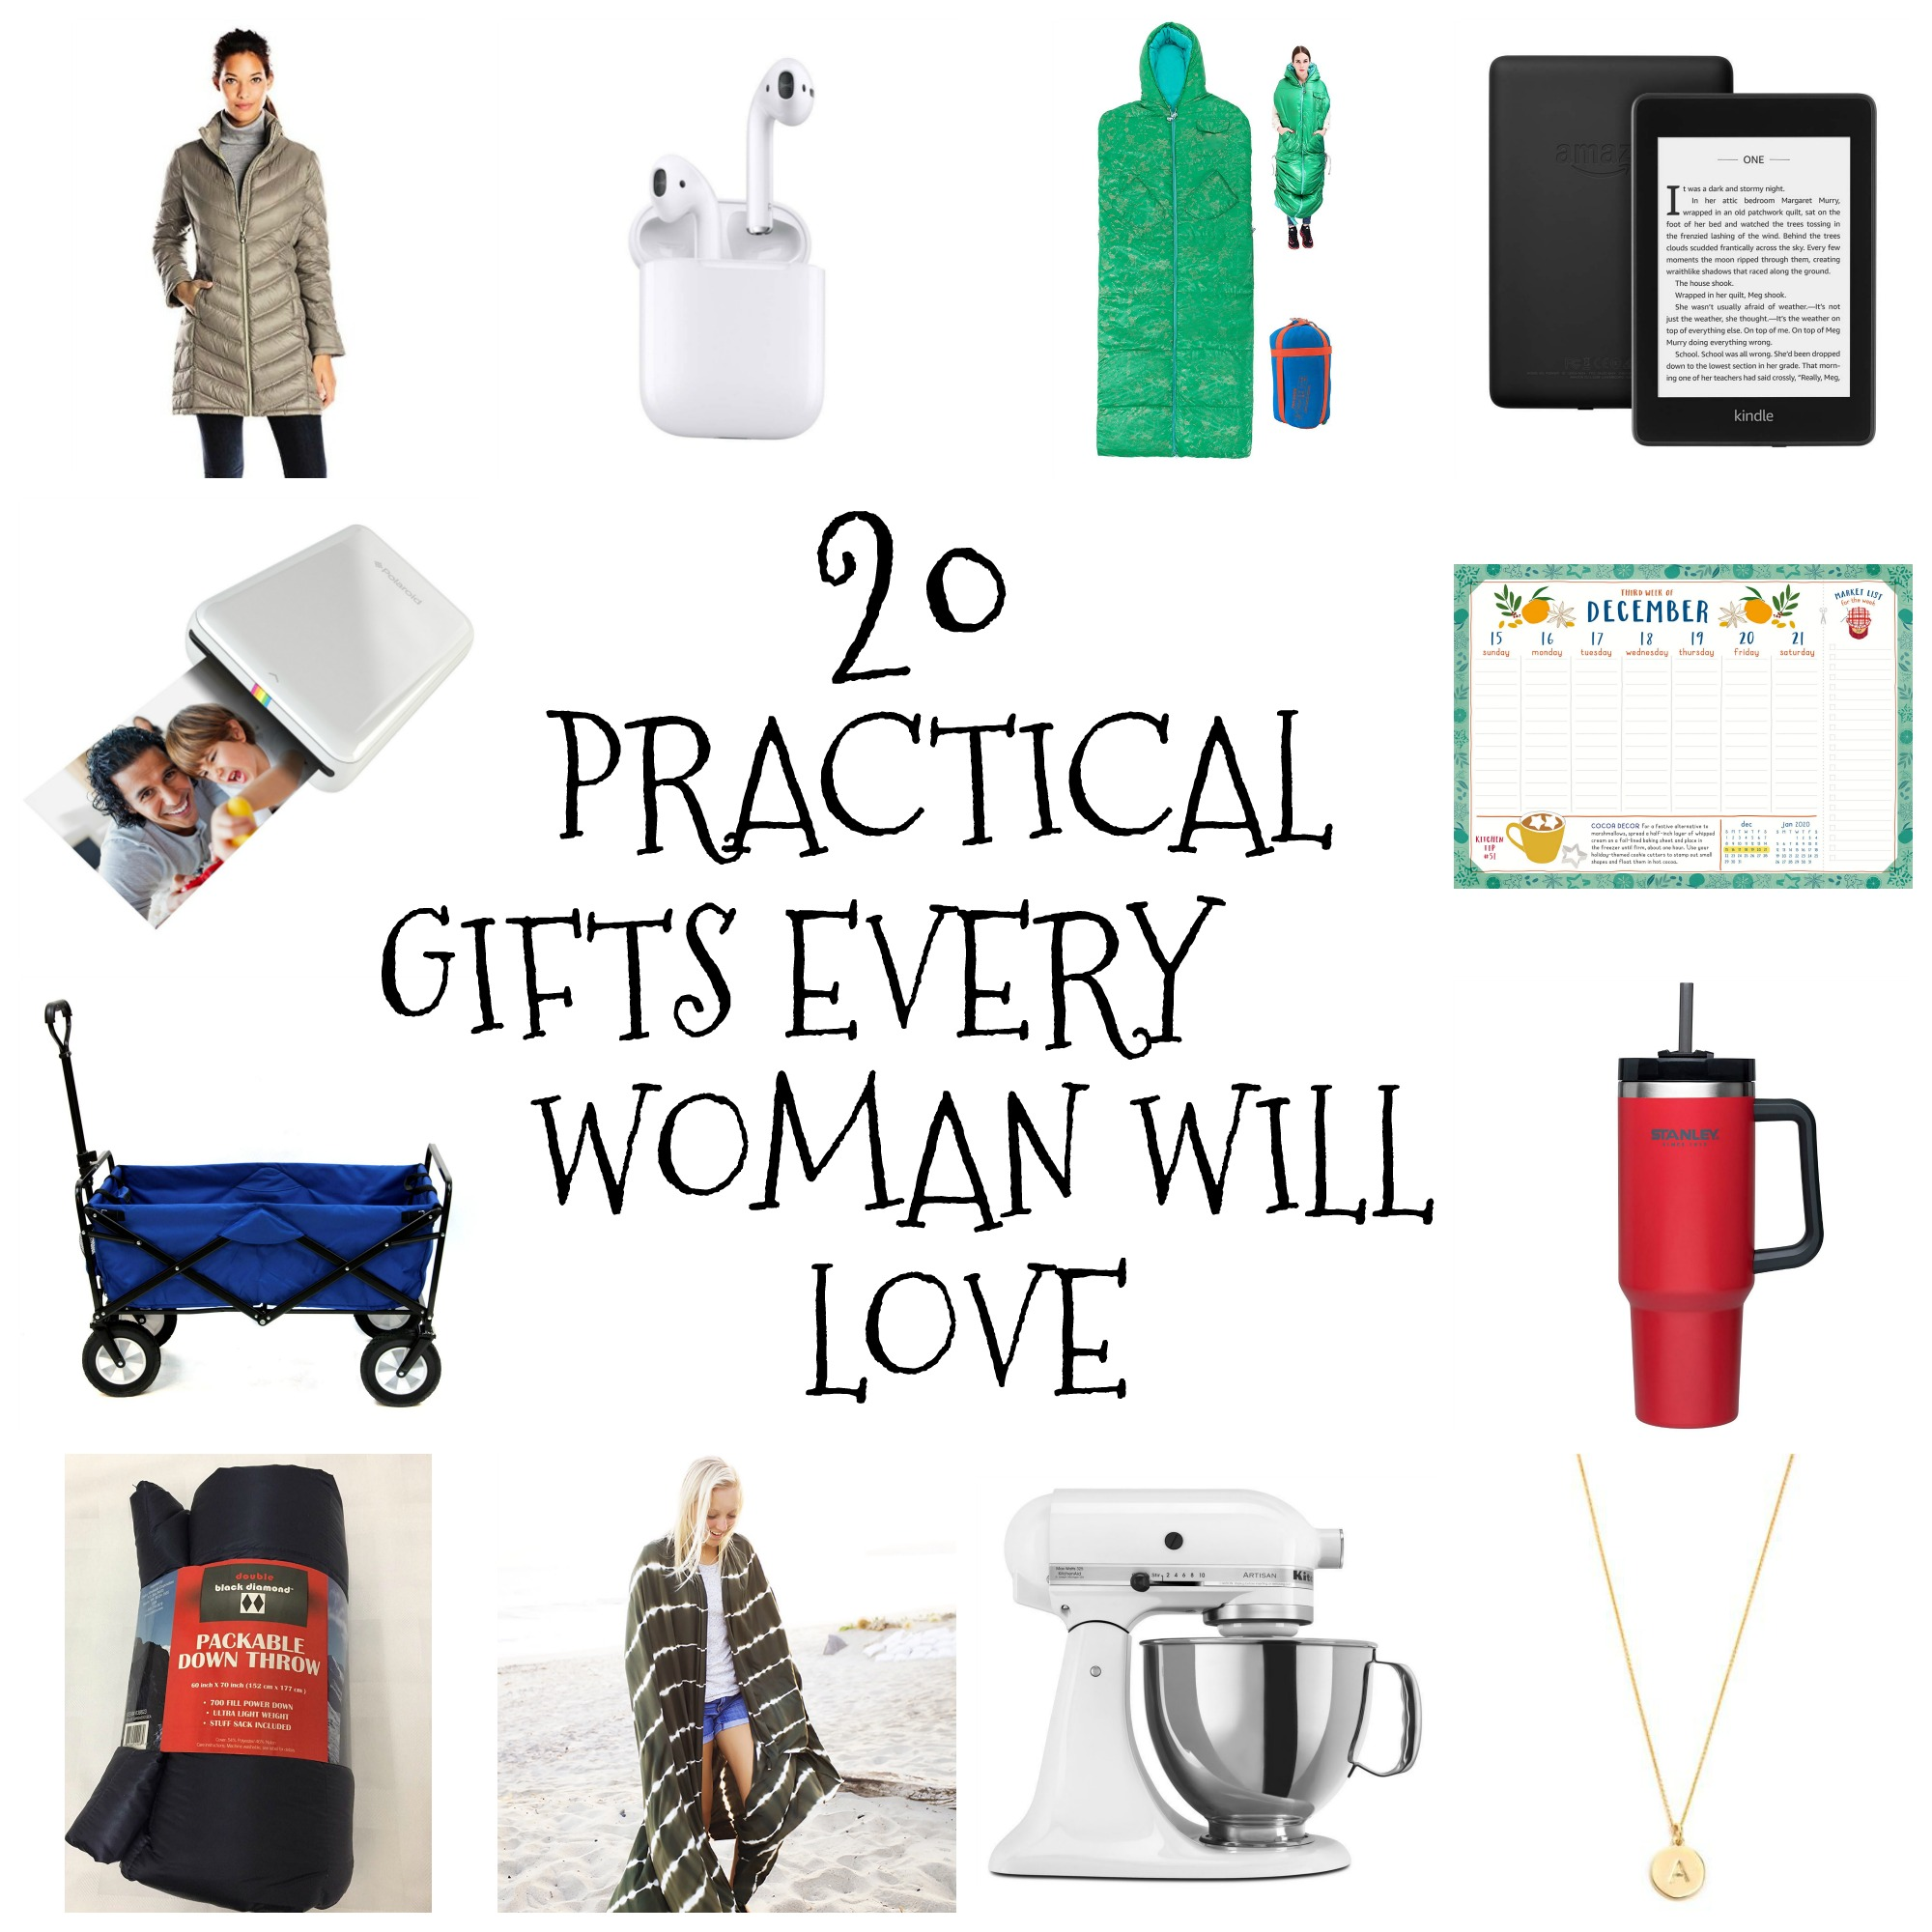 Good Christmas Gifts For The Wife: 20 Practical Gifts Every Woman Will Love